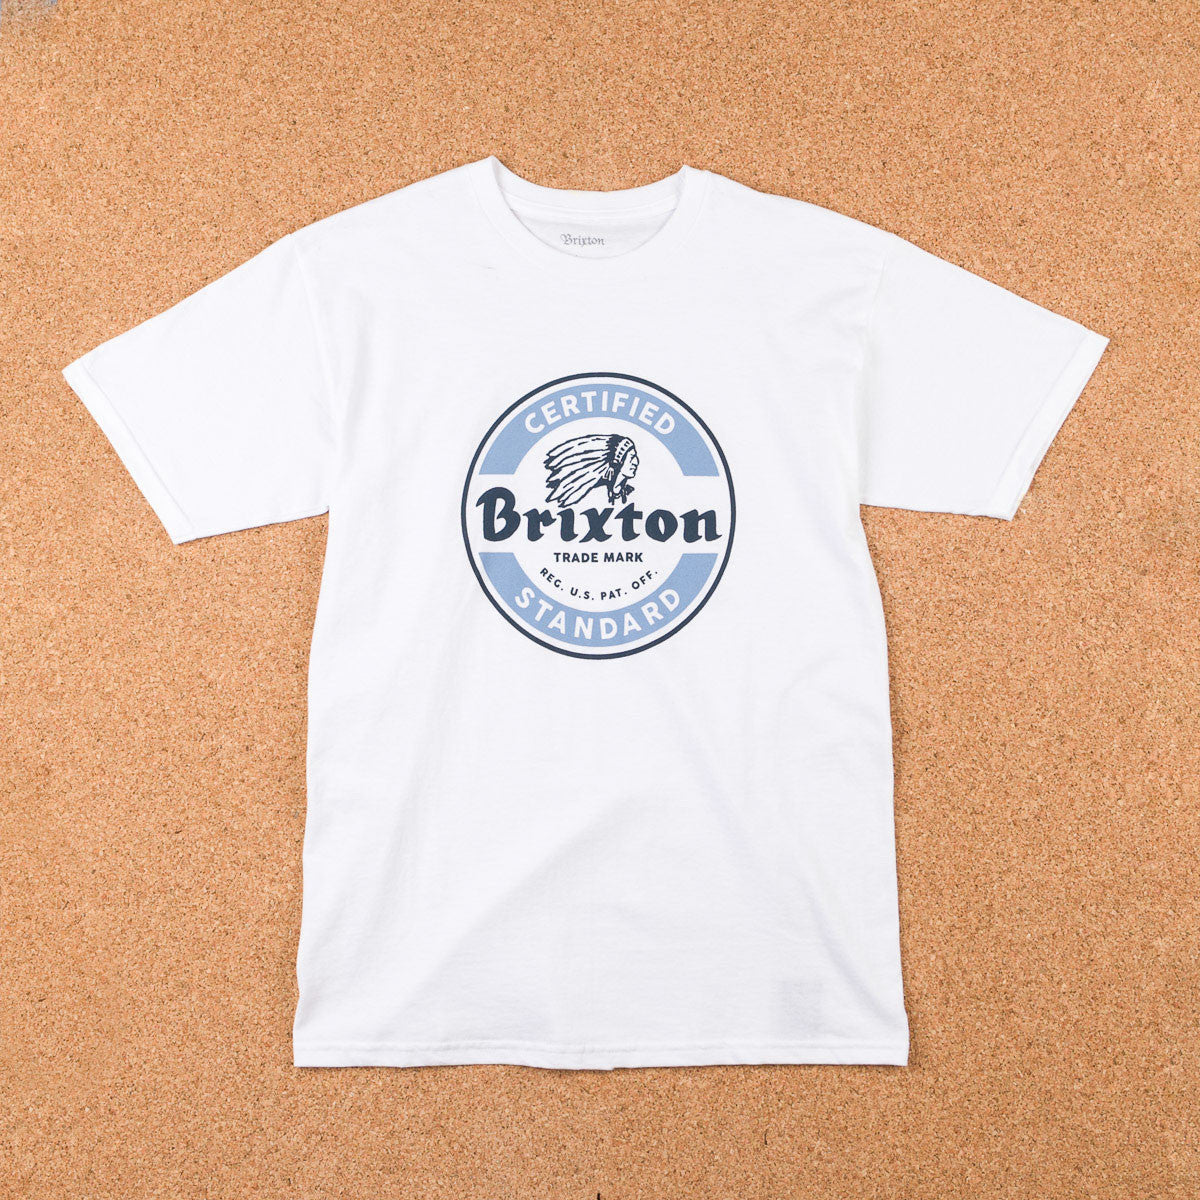 Brixton Soto T-Shirt - White / Blue